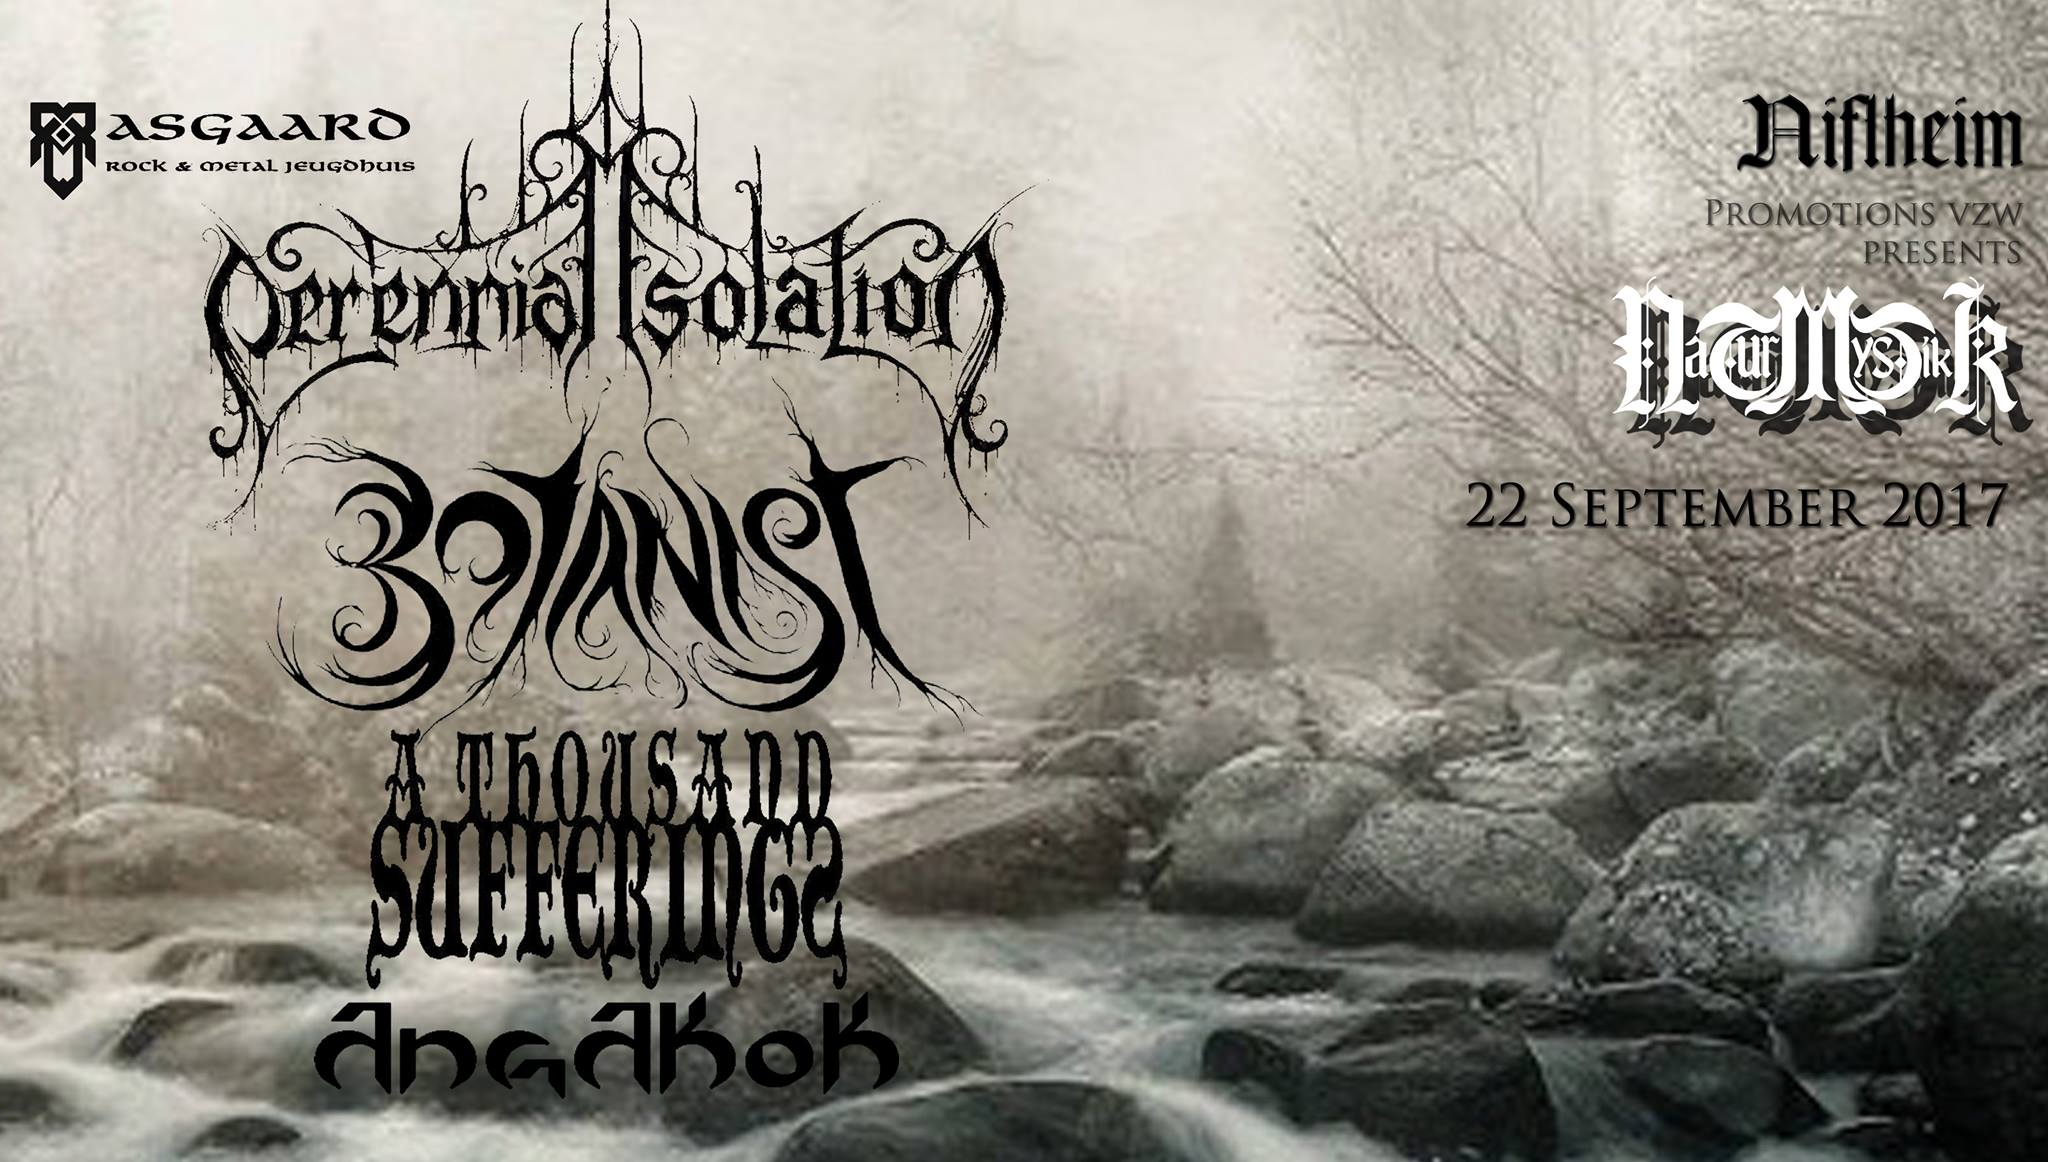 Naturmystikk w/ Botanist – Perennial Isolation – A Thousand Sufferings – Angakok